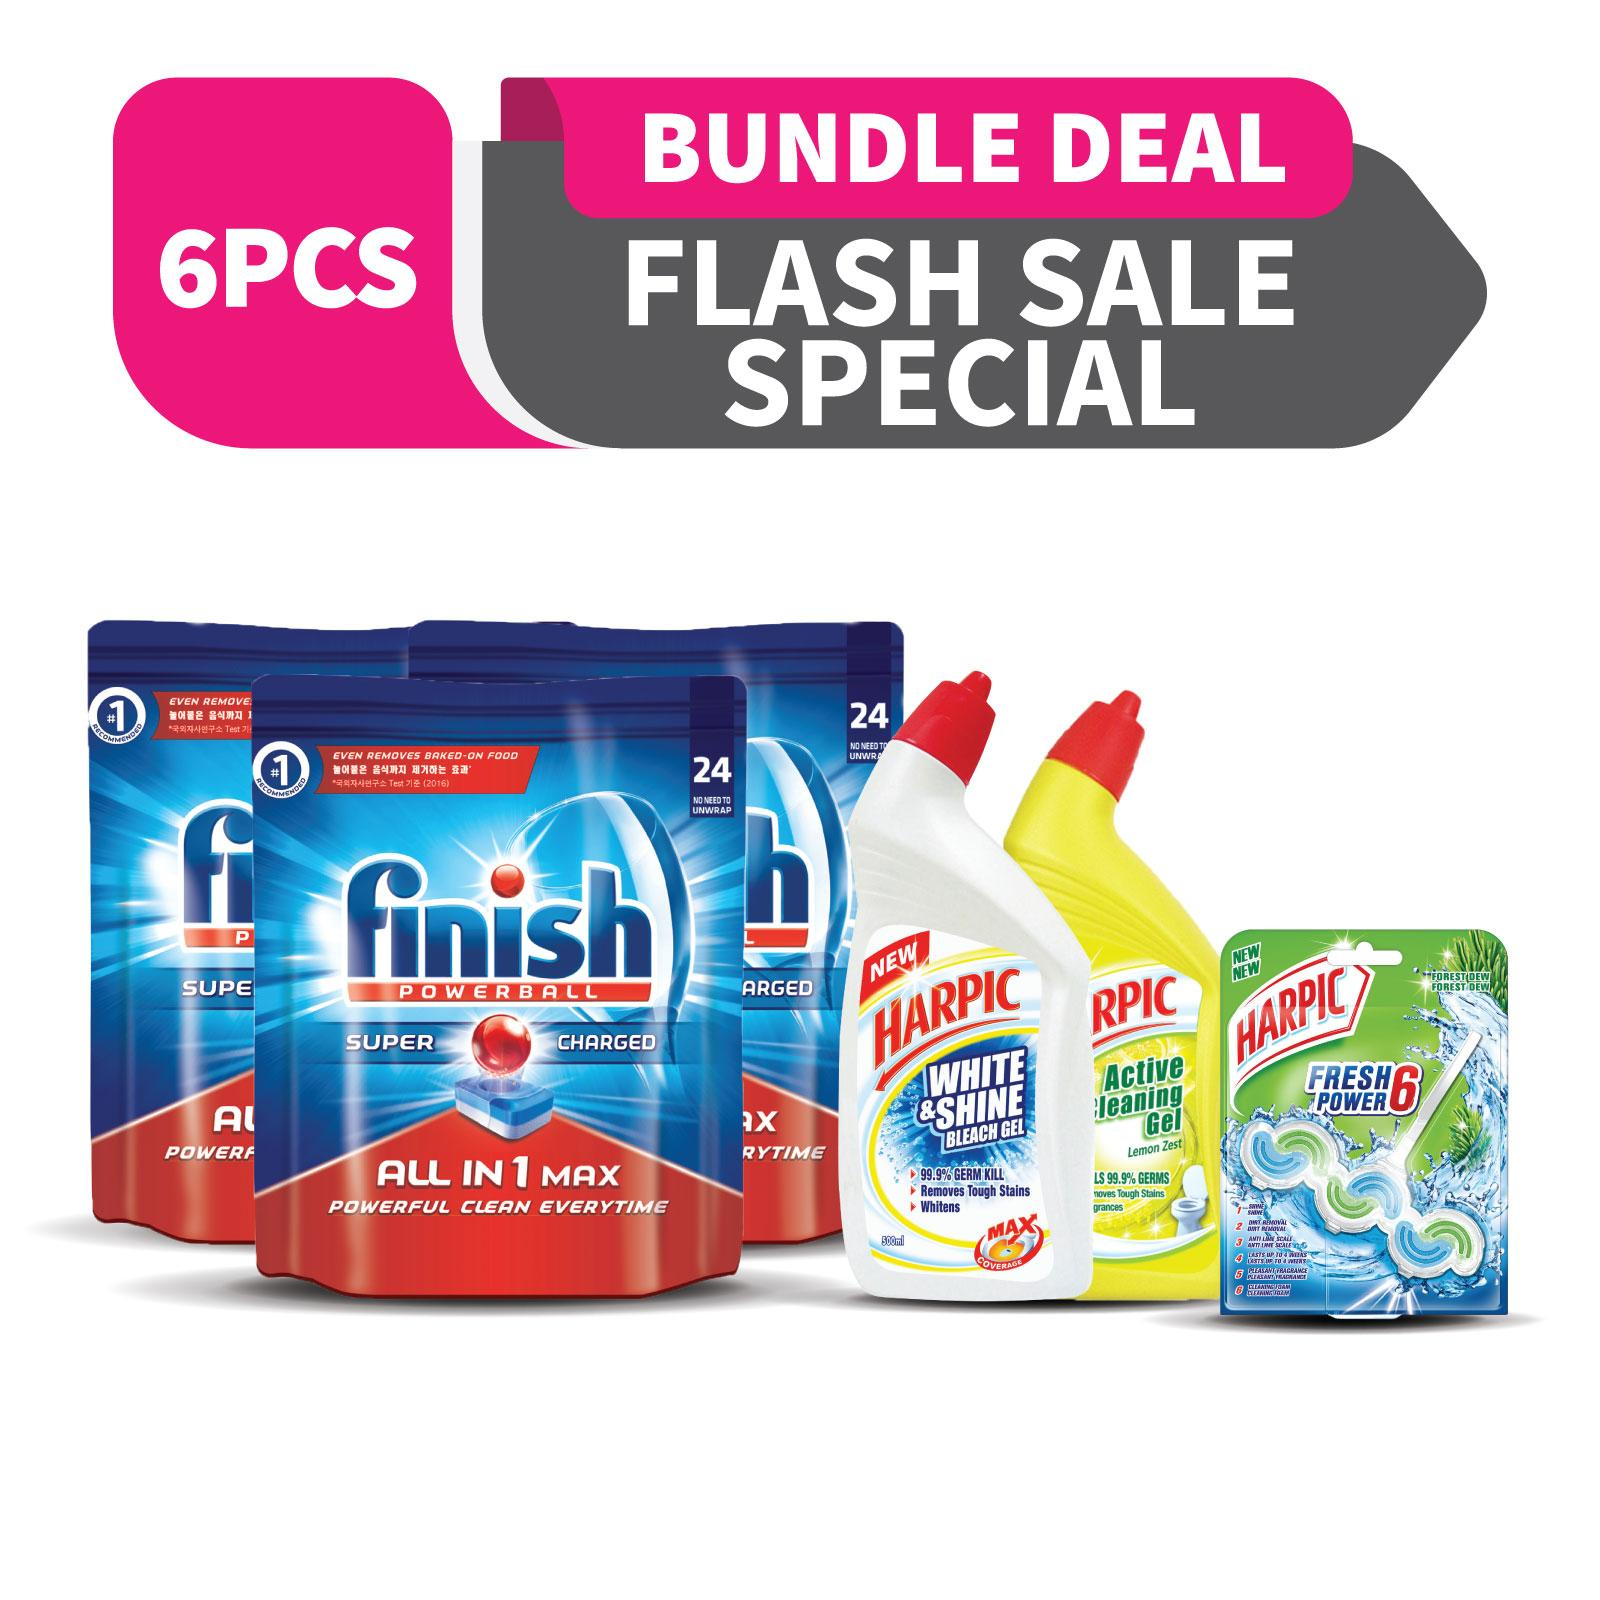 3x Finish All In One Max Super Charged Powerball Dishwasher Tablets 24 Tablets + Harpic Cleaning Set By Rb Home.